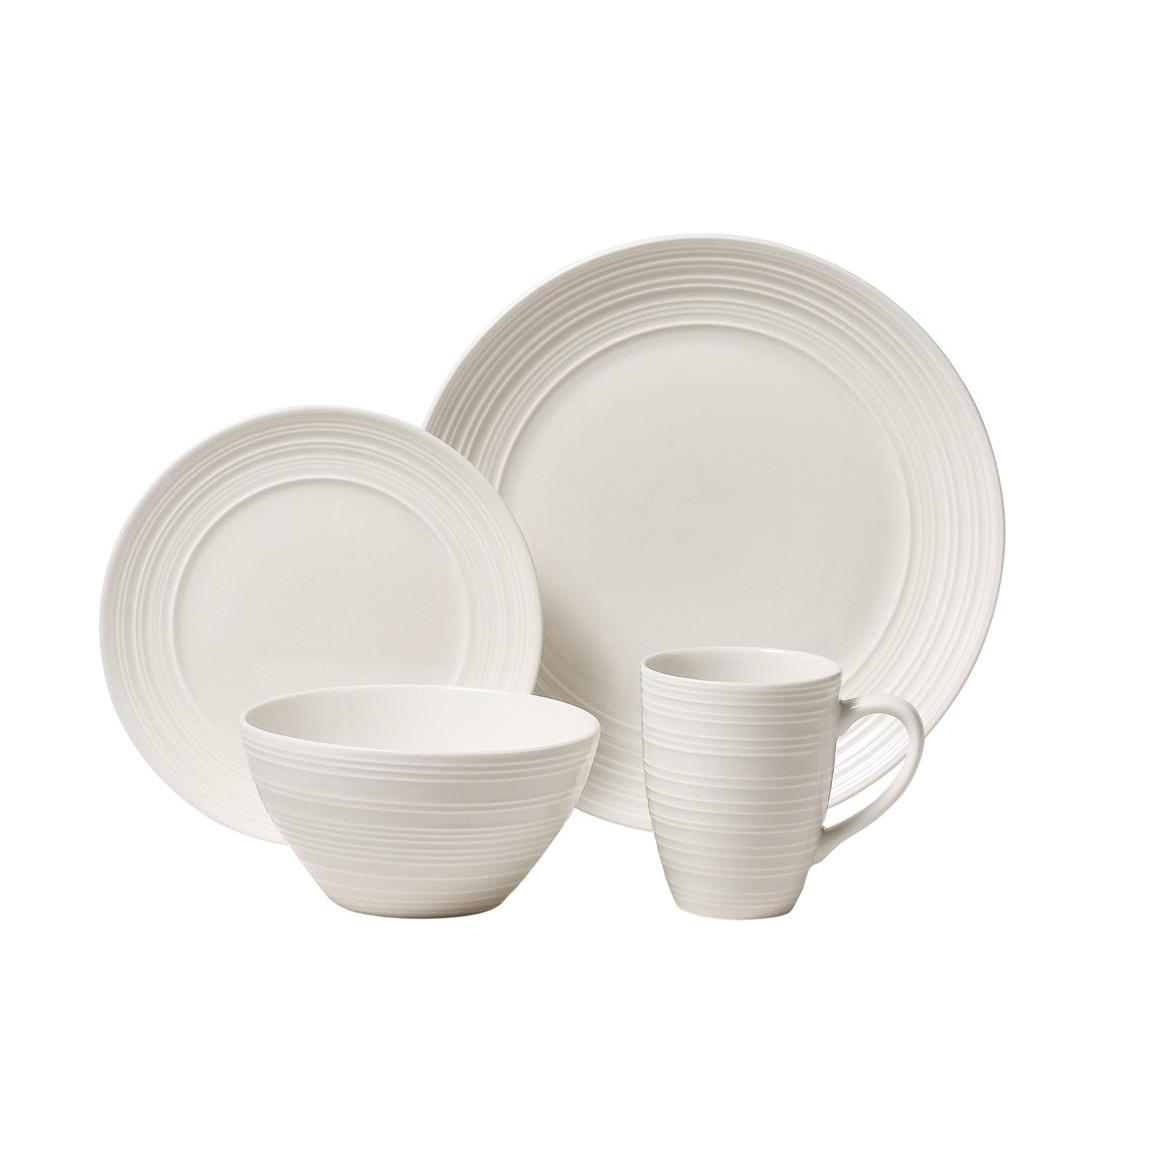 Dinnerware Set Ripple White 16 Piece Set